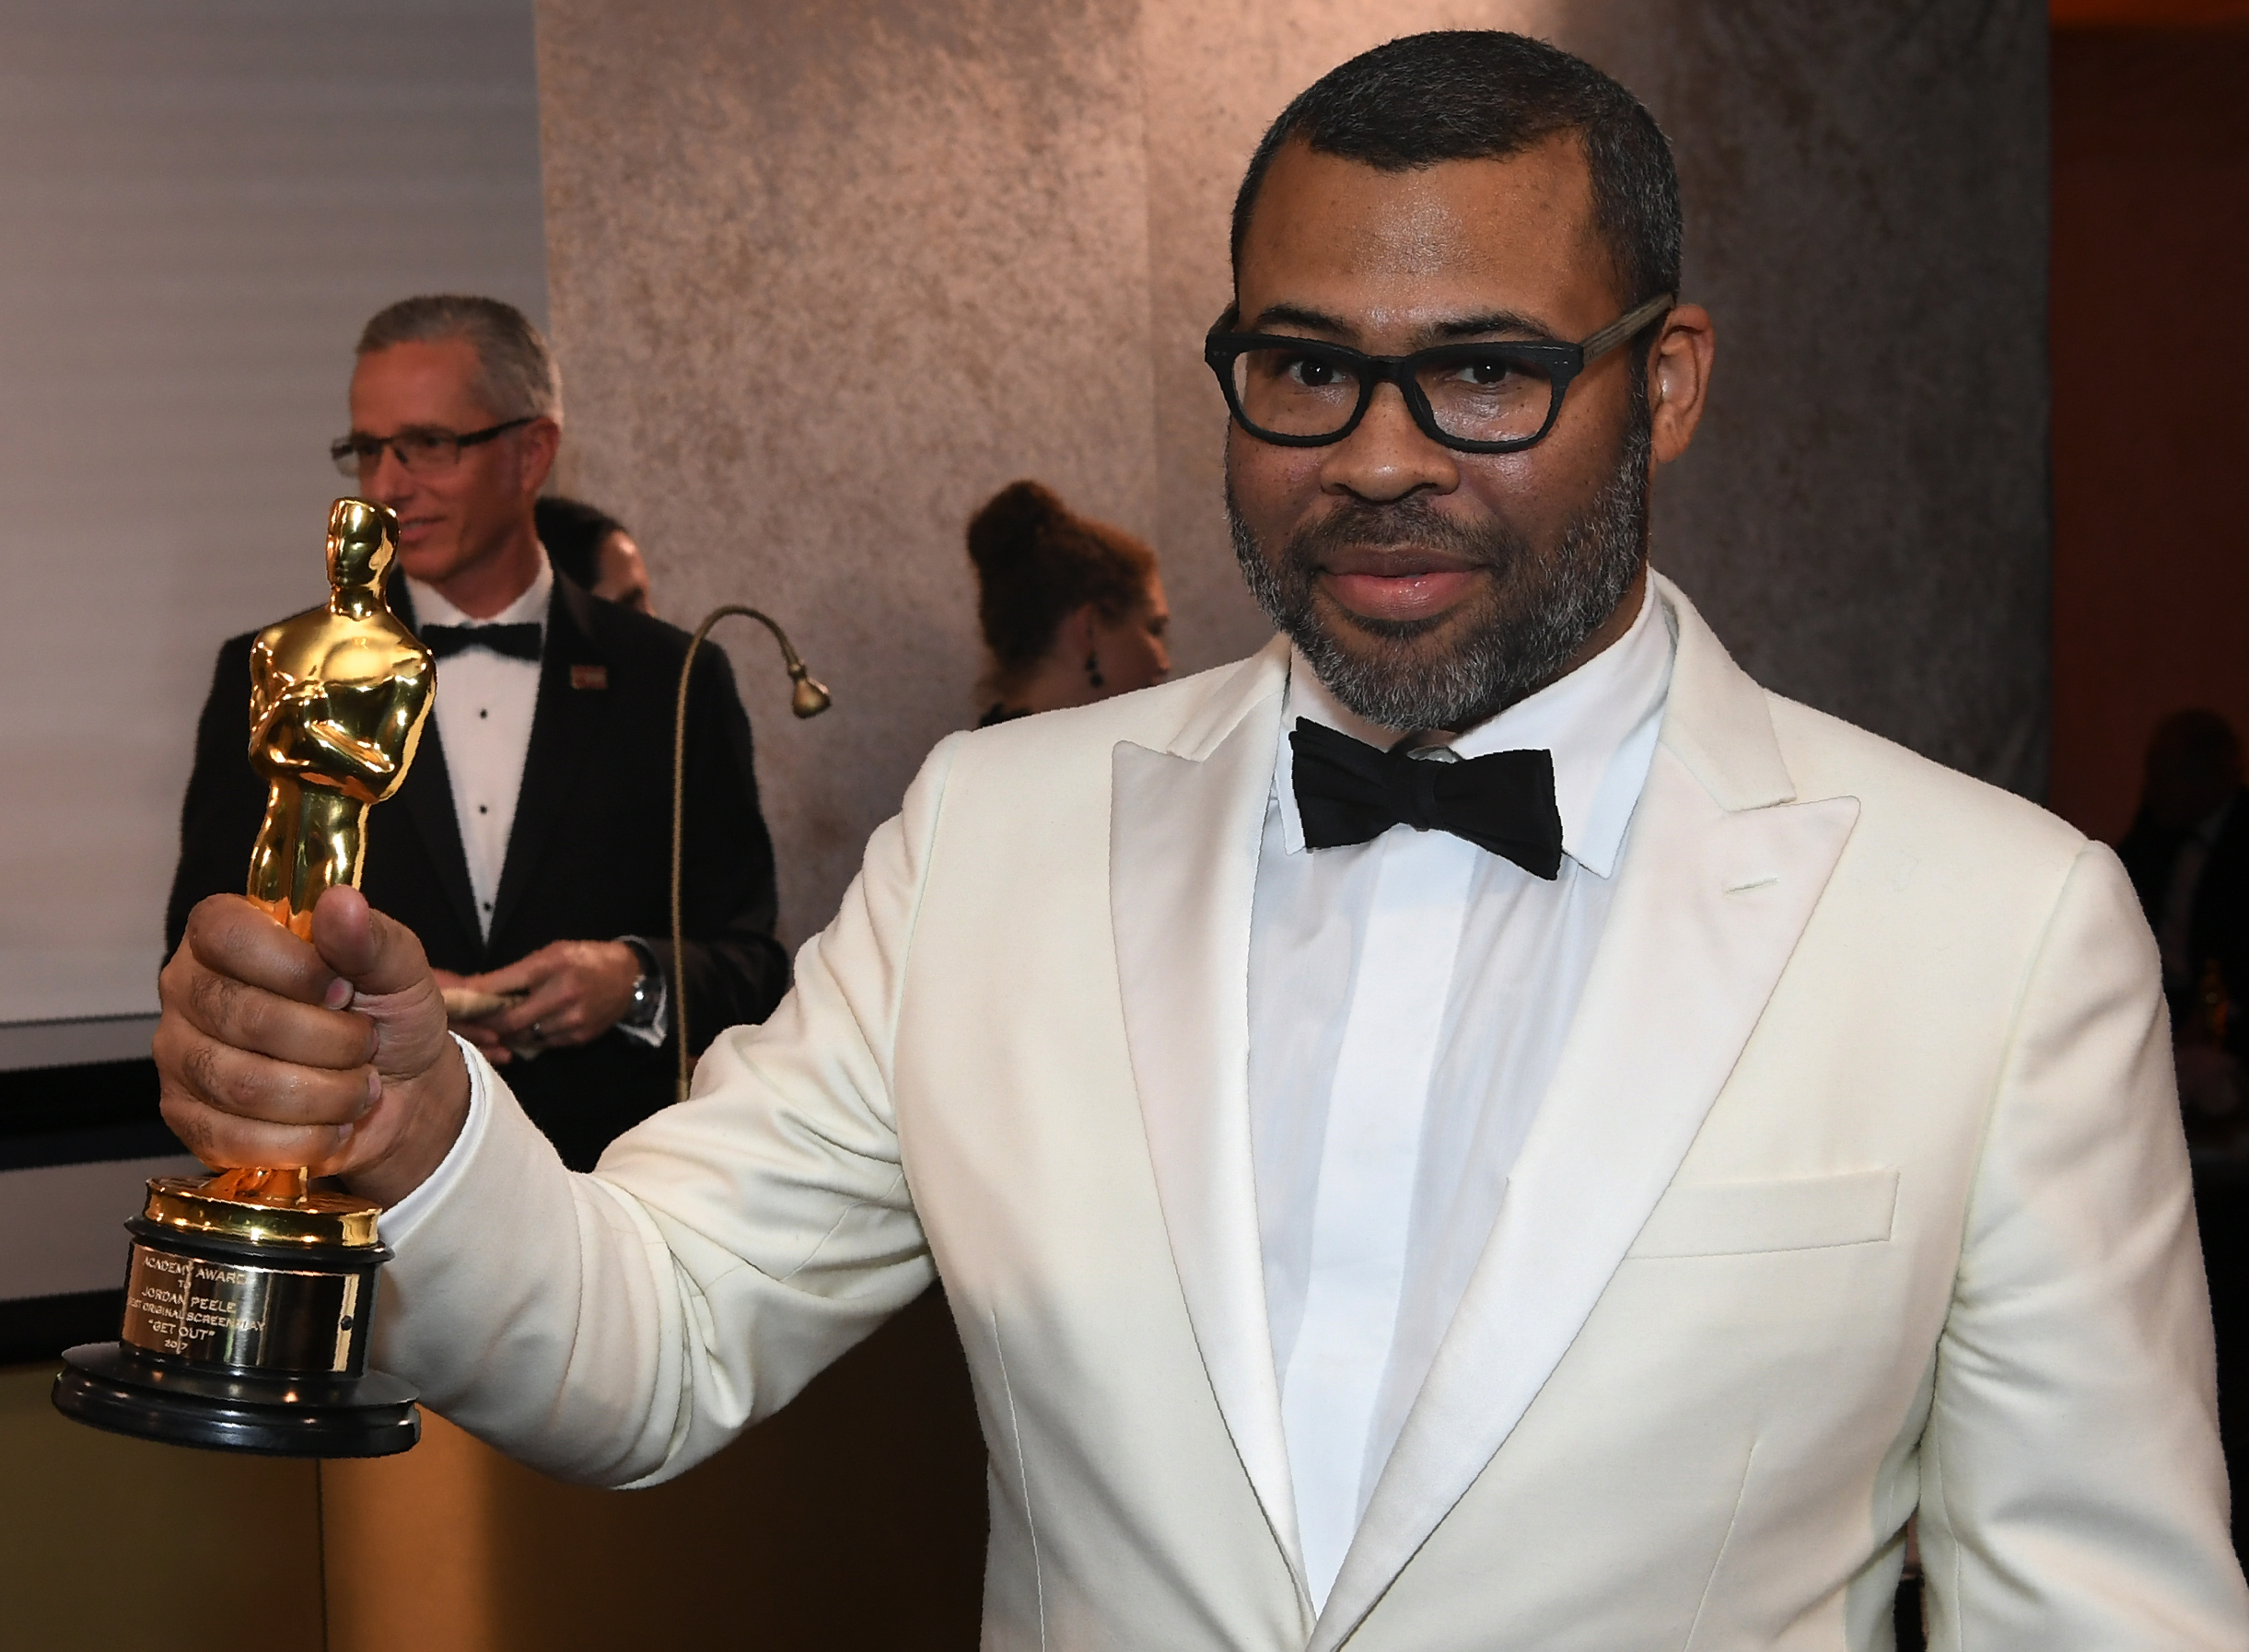 Best Original Screenplay laureate for  Get Out  director Jordan Peele attends the 90th Annual Academy Awards Governors Ball at the Hollywood & Highland Center on March 4, 2018, in Hollywood, California. / AFP PHOTO / ANGELA WEISS        (Photo credit should read ANGELA WEISS/AFP/Getty Images)